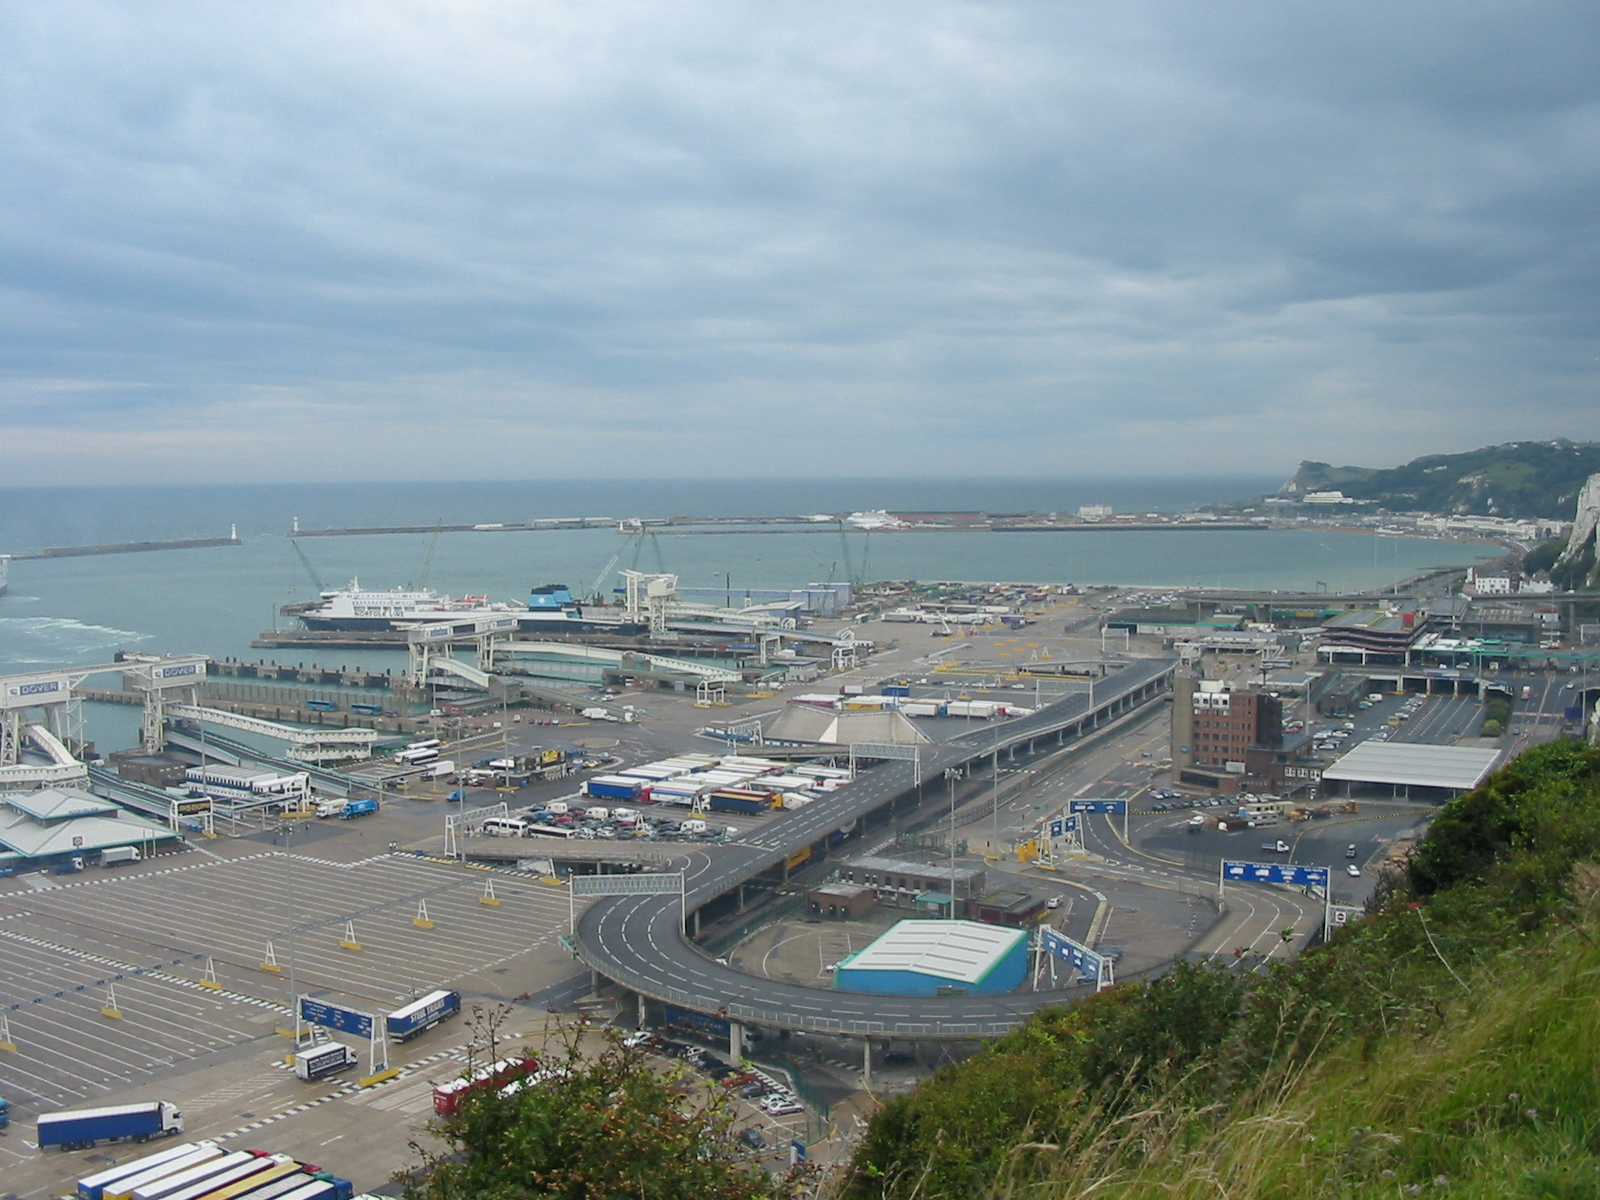 Looking down on the port of Dover from the Cliffs. This photo was taken by Tom Corser and is © Tom Corser 2009. http://www.tomcorser.com